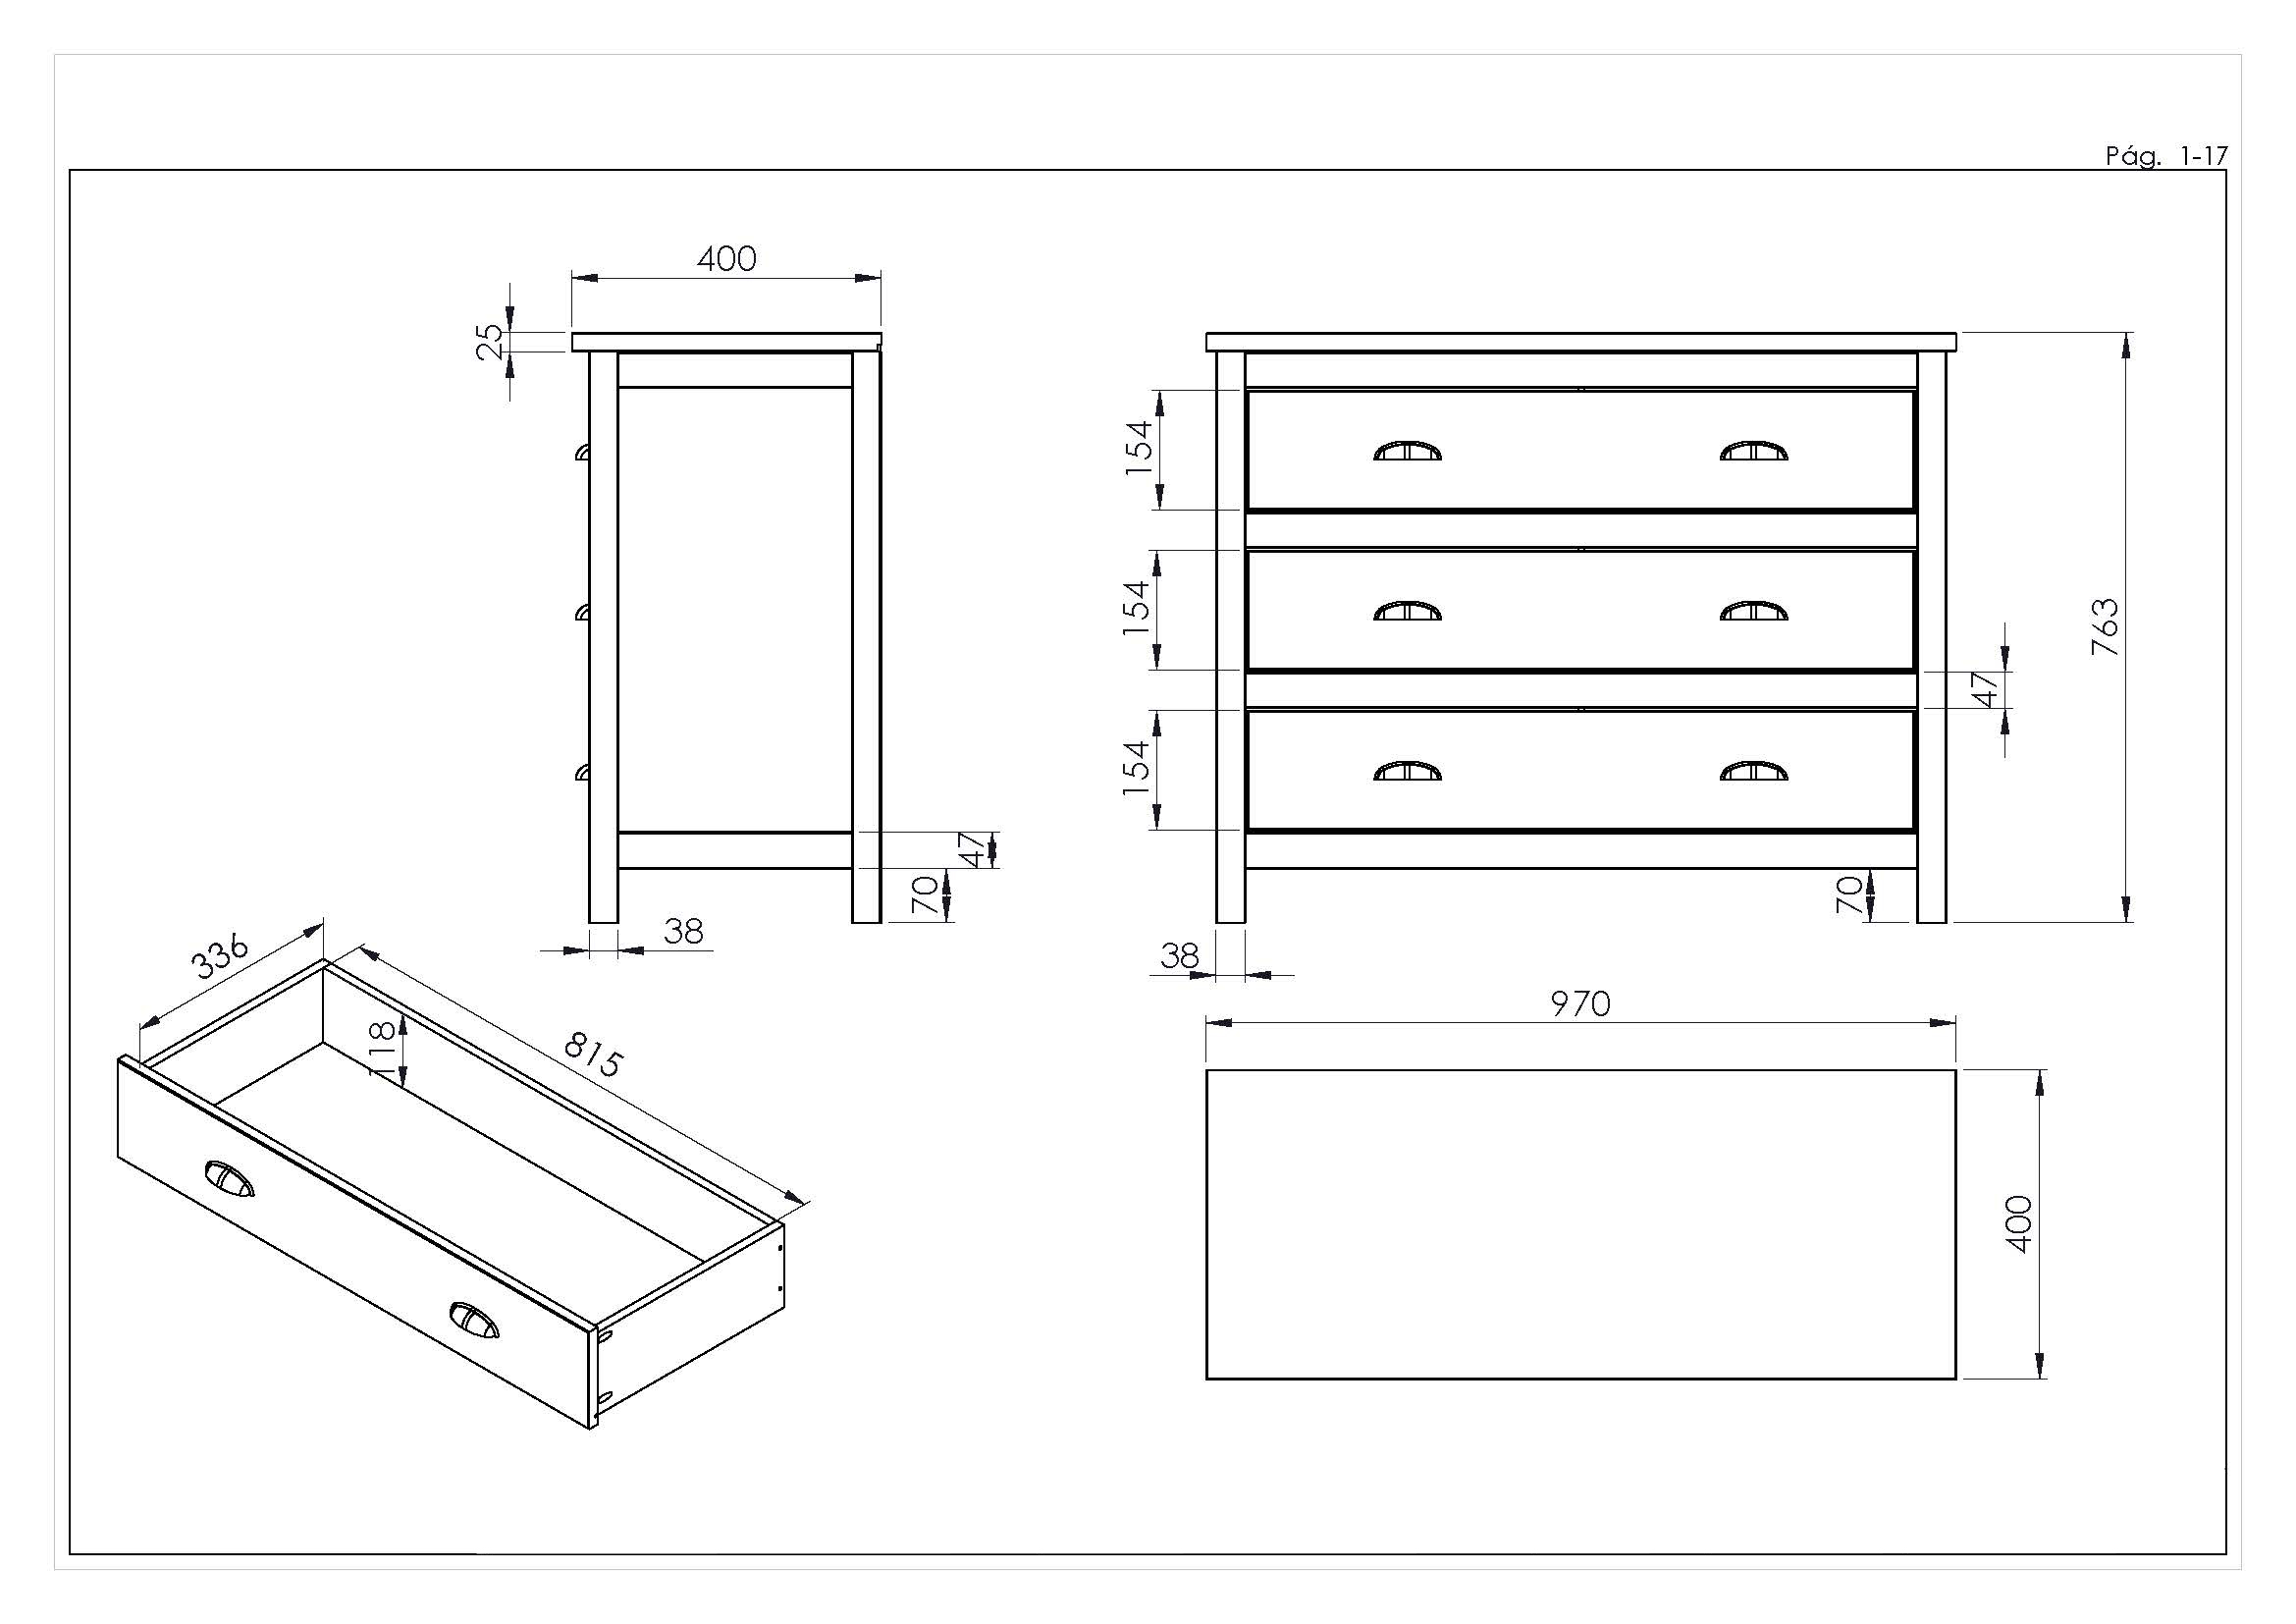 Kingston 3 Drawer Chest Measurements